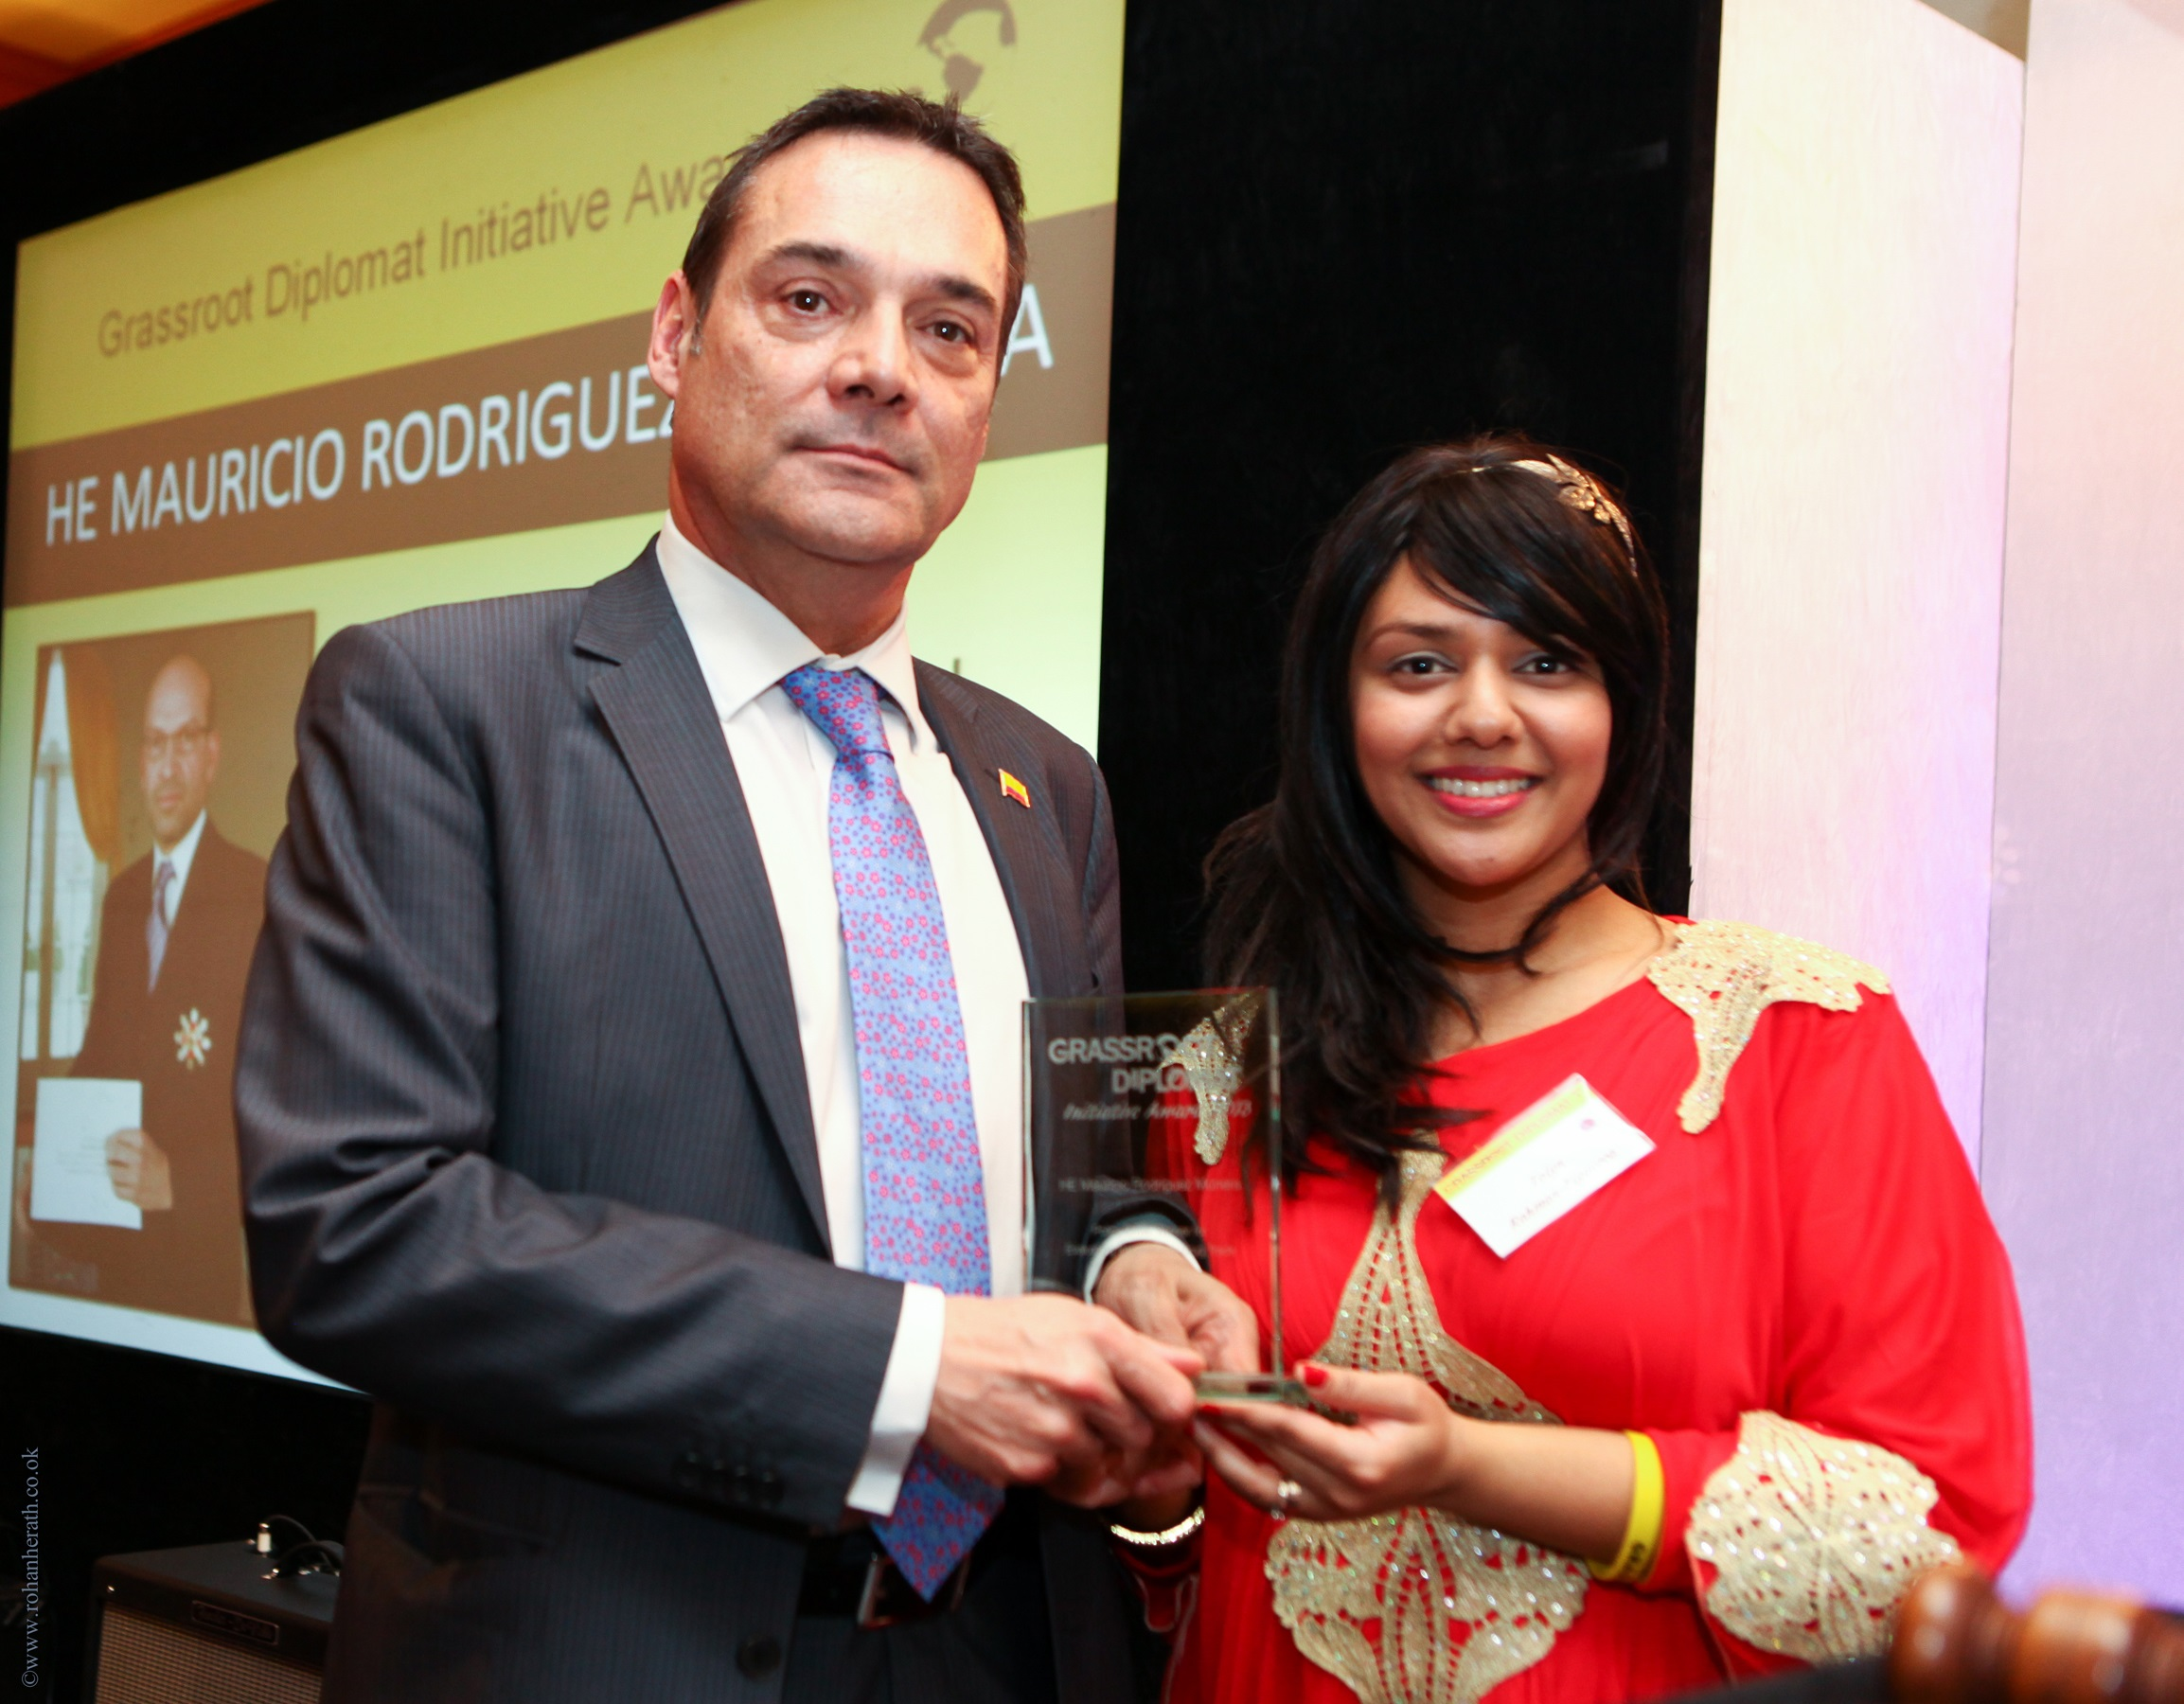 HE MAURICIO RODRIGUEZ MUNERA - EMBASSY OF COLOMBIAPOLICY DRIVER WINNER: EVALUATING INTERNATIONAL DRUG TRADE2013Colombian Ambassador His Excellency Mauricio Rodriguez Munera a vocal participant on tackling the war on drugs. The Ambassador has been a close associate in evaluating new alternatives to combat the production and consumption of drugs in helping the US with the war on drugs. Mr Munera feels very strongly on the prohibition of drugs and has helped define the grey areas in what was previously seen as black and white case on prohibition versus legalisation of drugs. The Ambassador was represented by Juan Manuel Uribe.